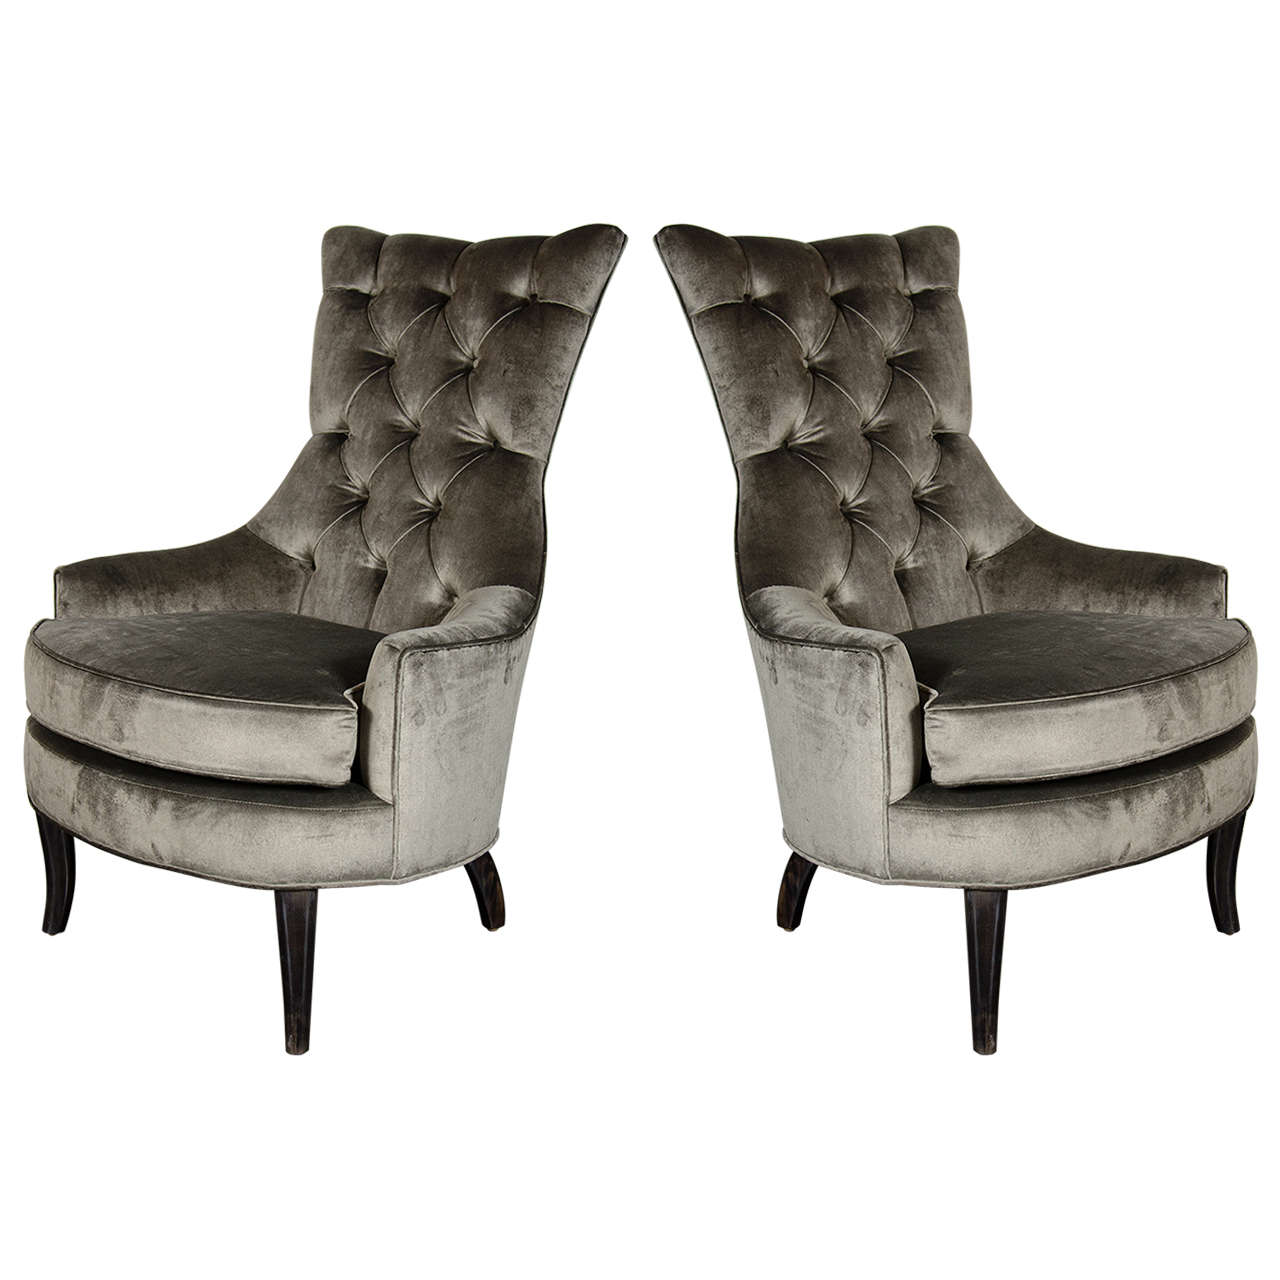 Ultra Chic Pair Of Mid Century Modern Tufted High Back